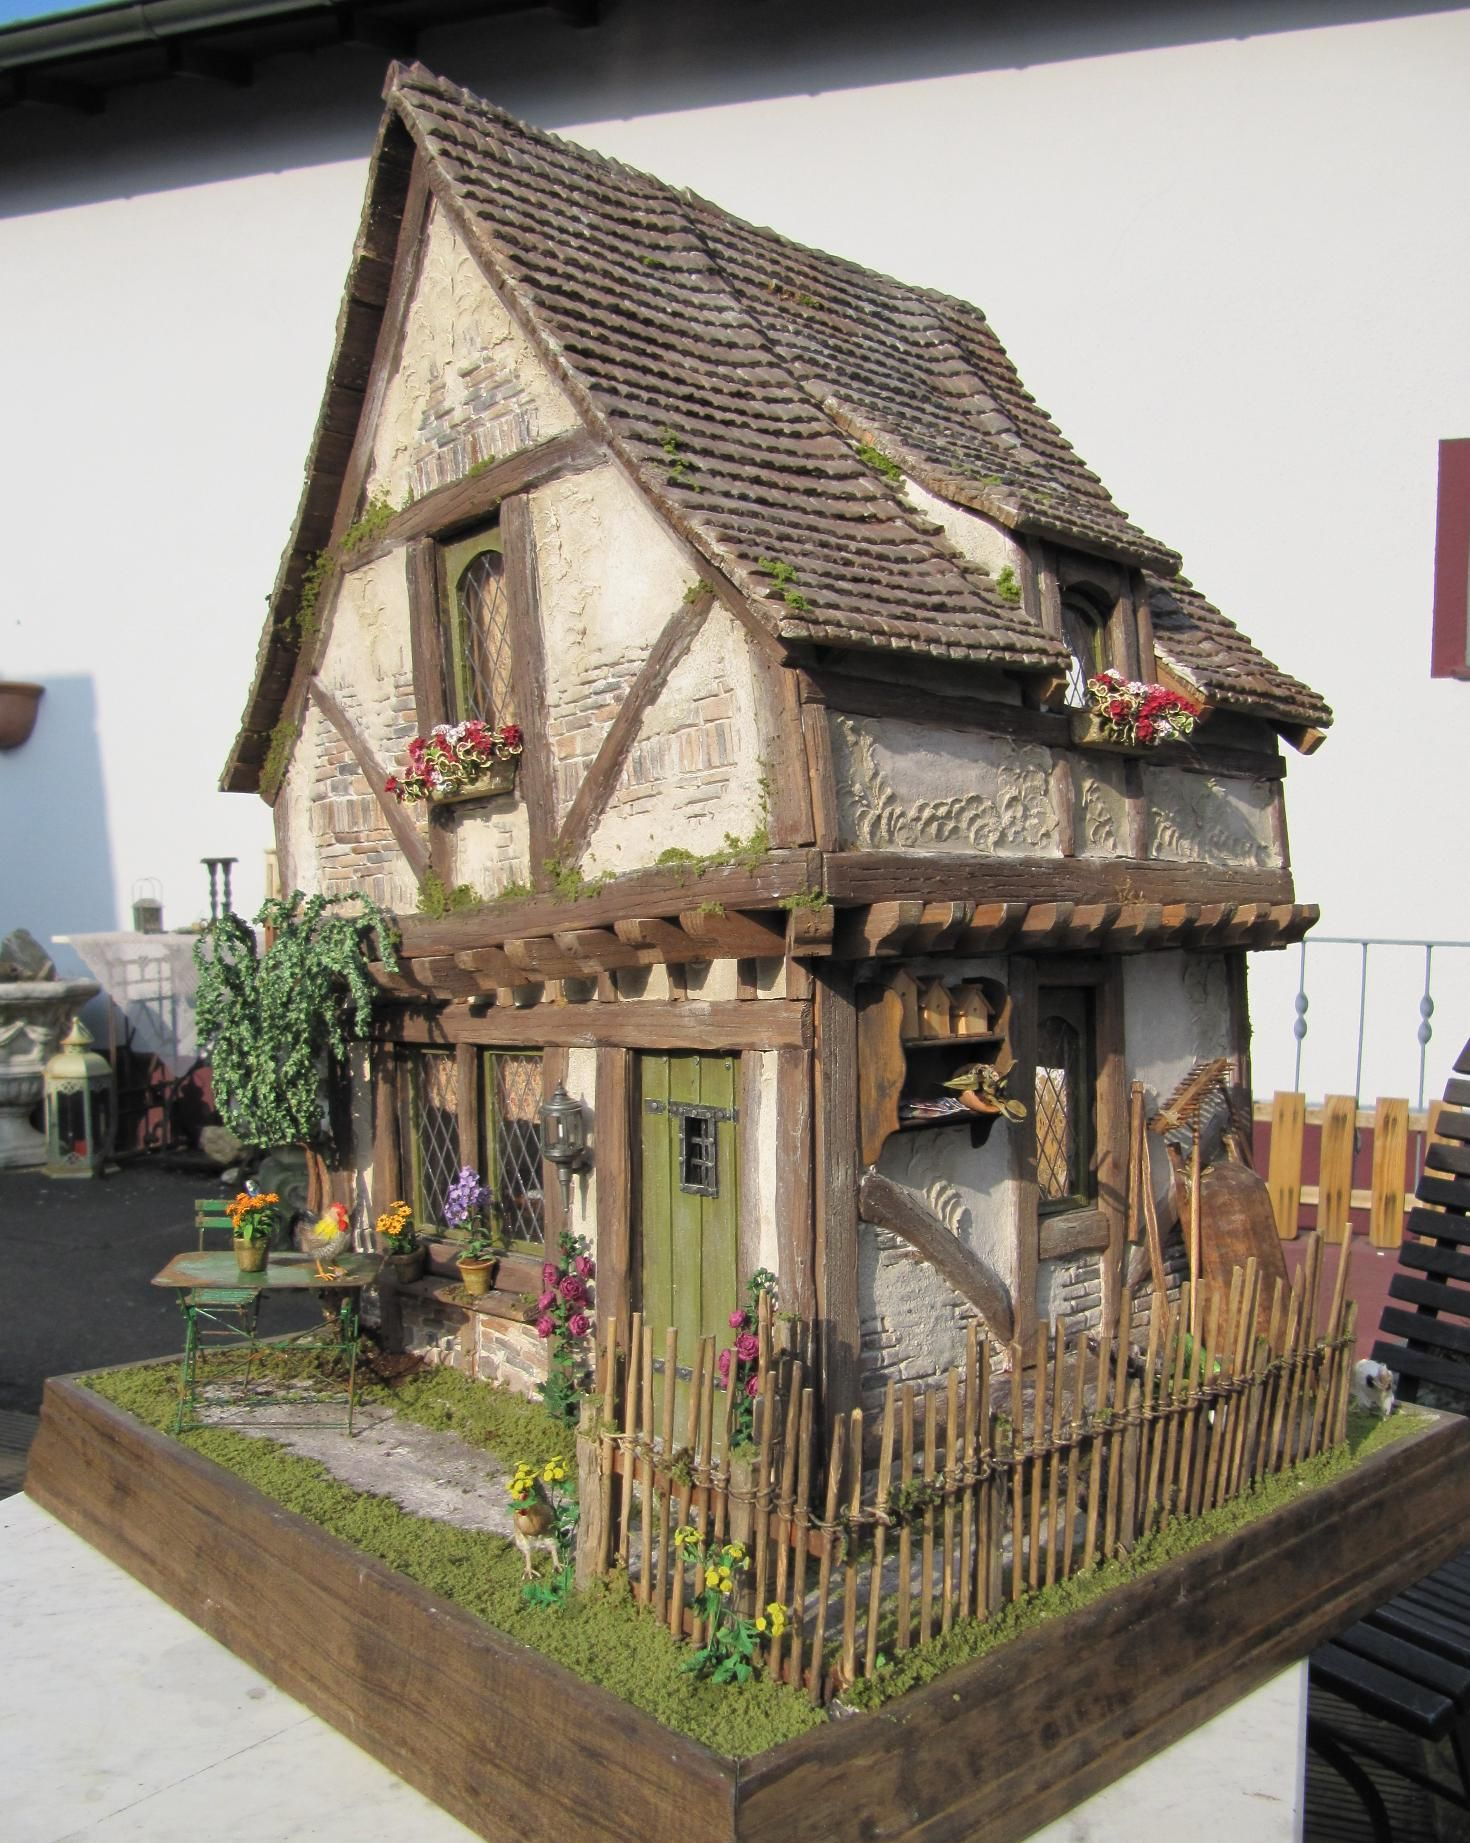 Hawaii Slanted House Design: My Privat Crooked House Done In Rik Pierce Class. All